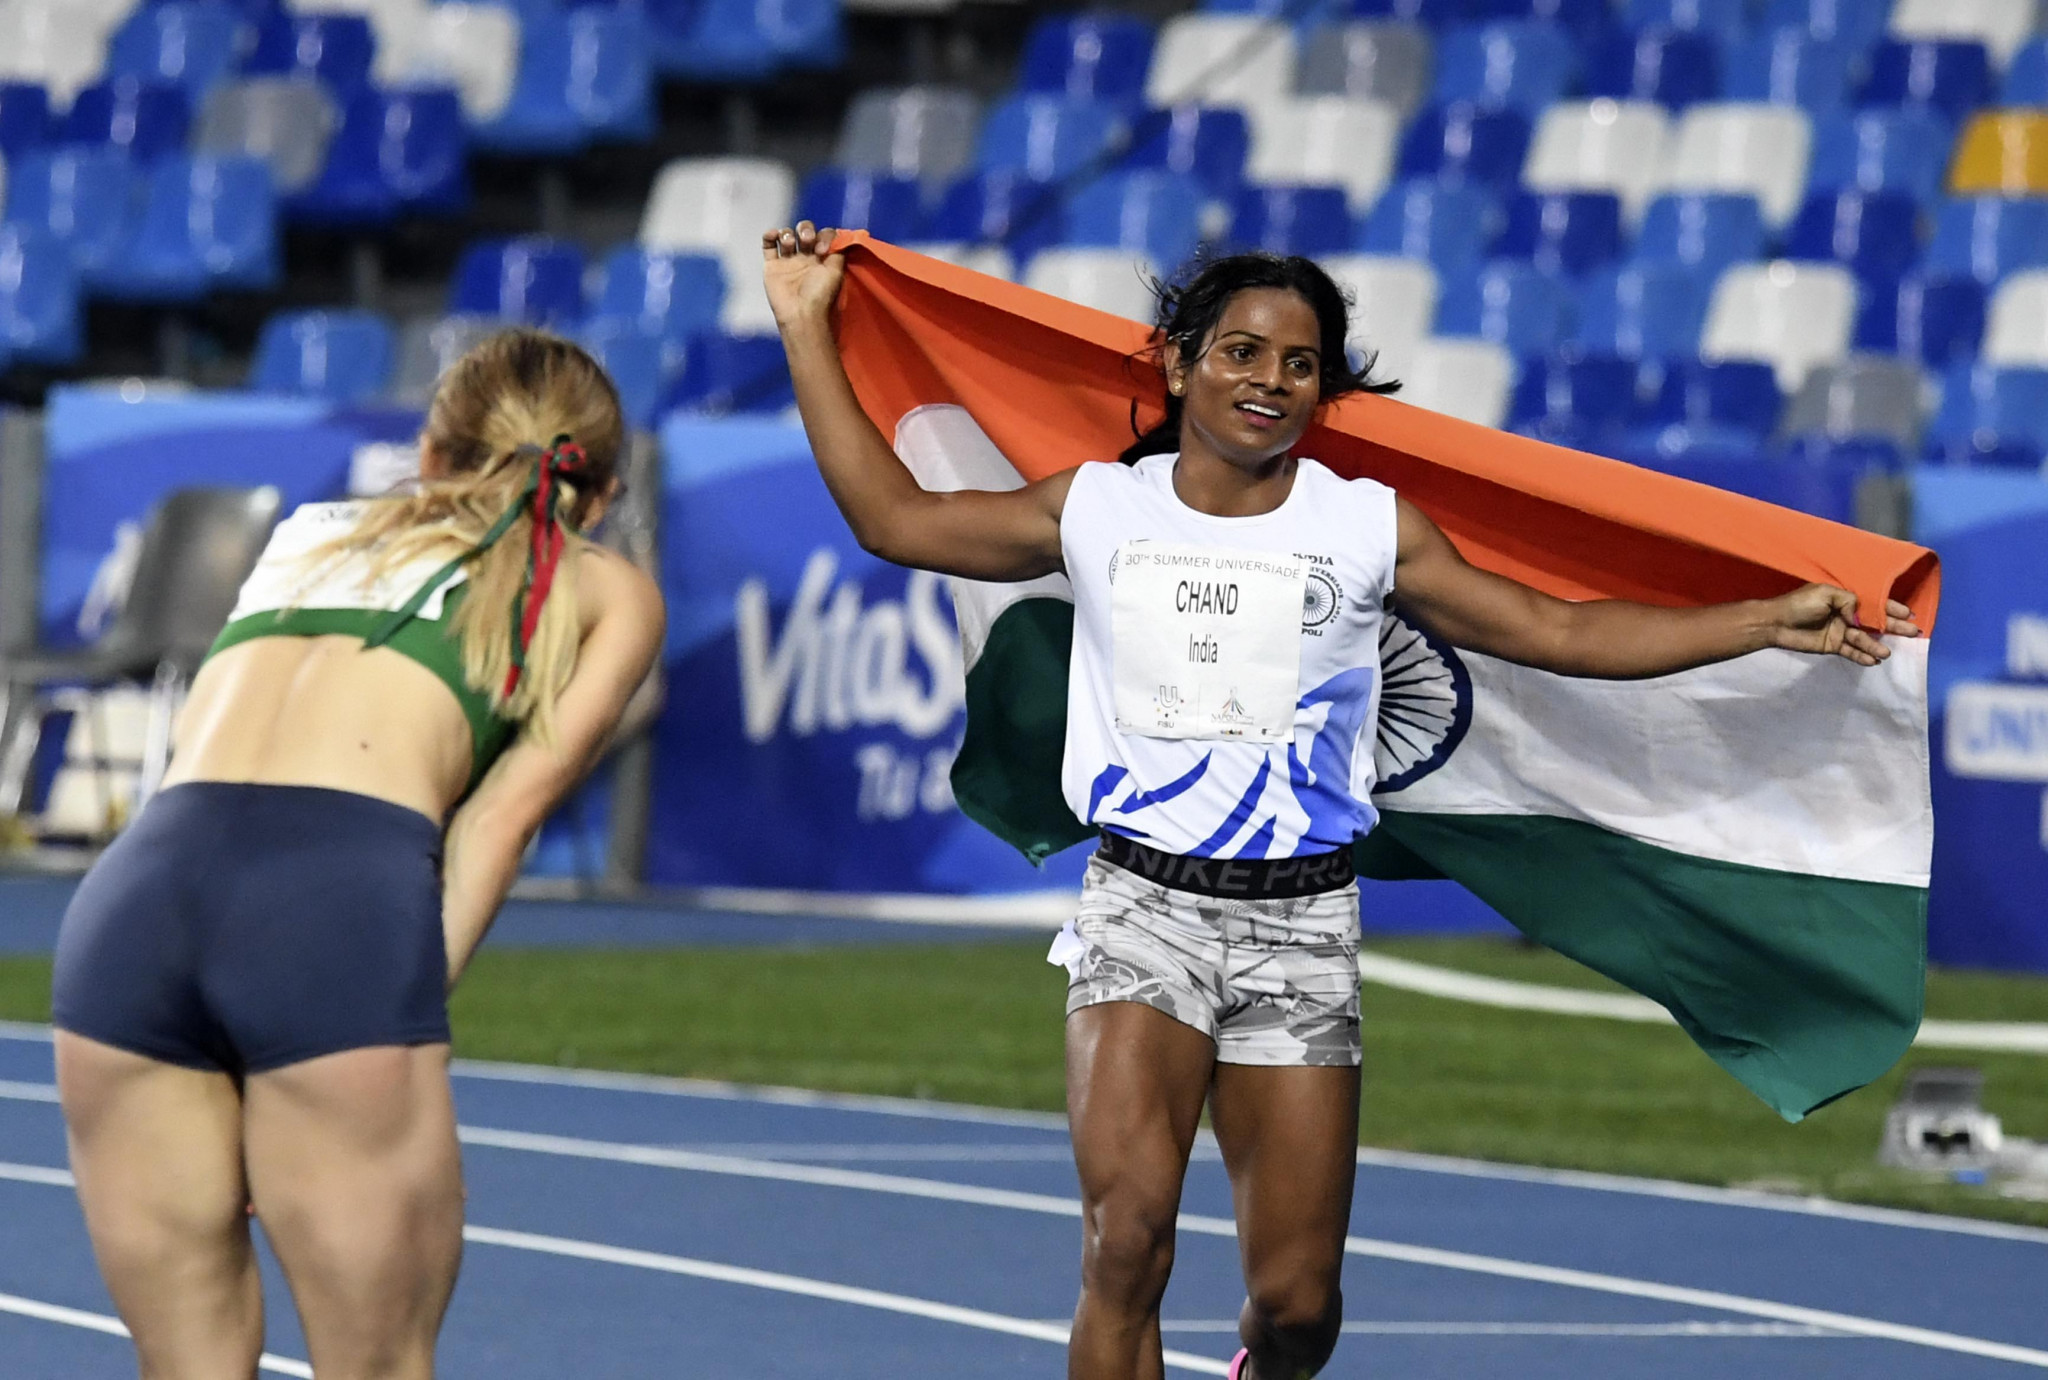 Chand races away from controversy as she powers to 100m glory at Naples 2019